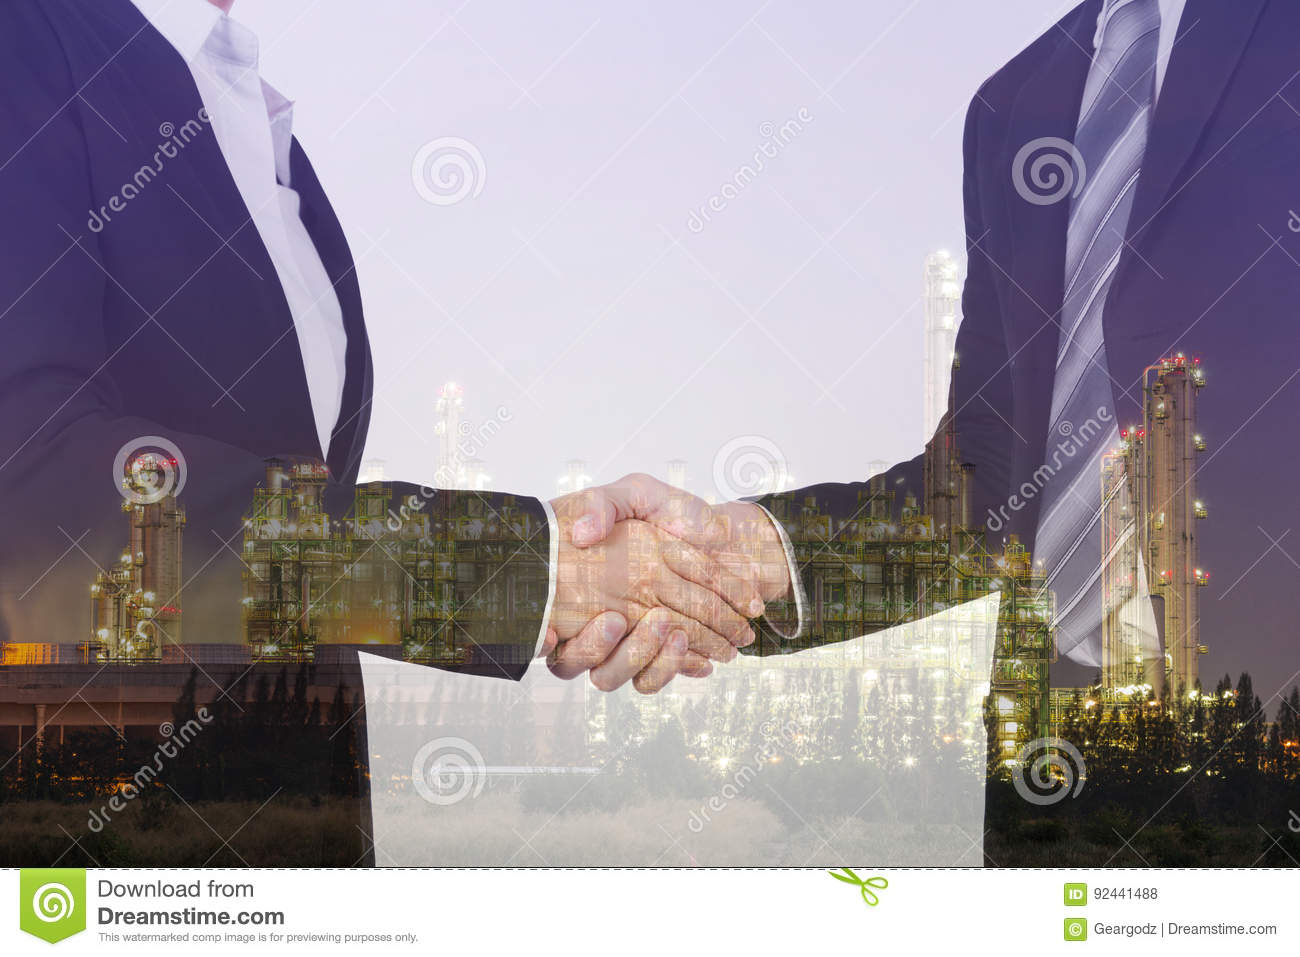 Double exposure of shaking hand between businessman and business